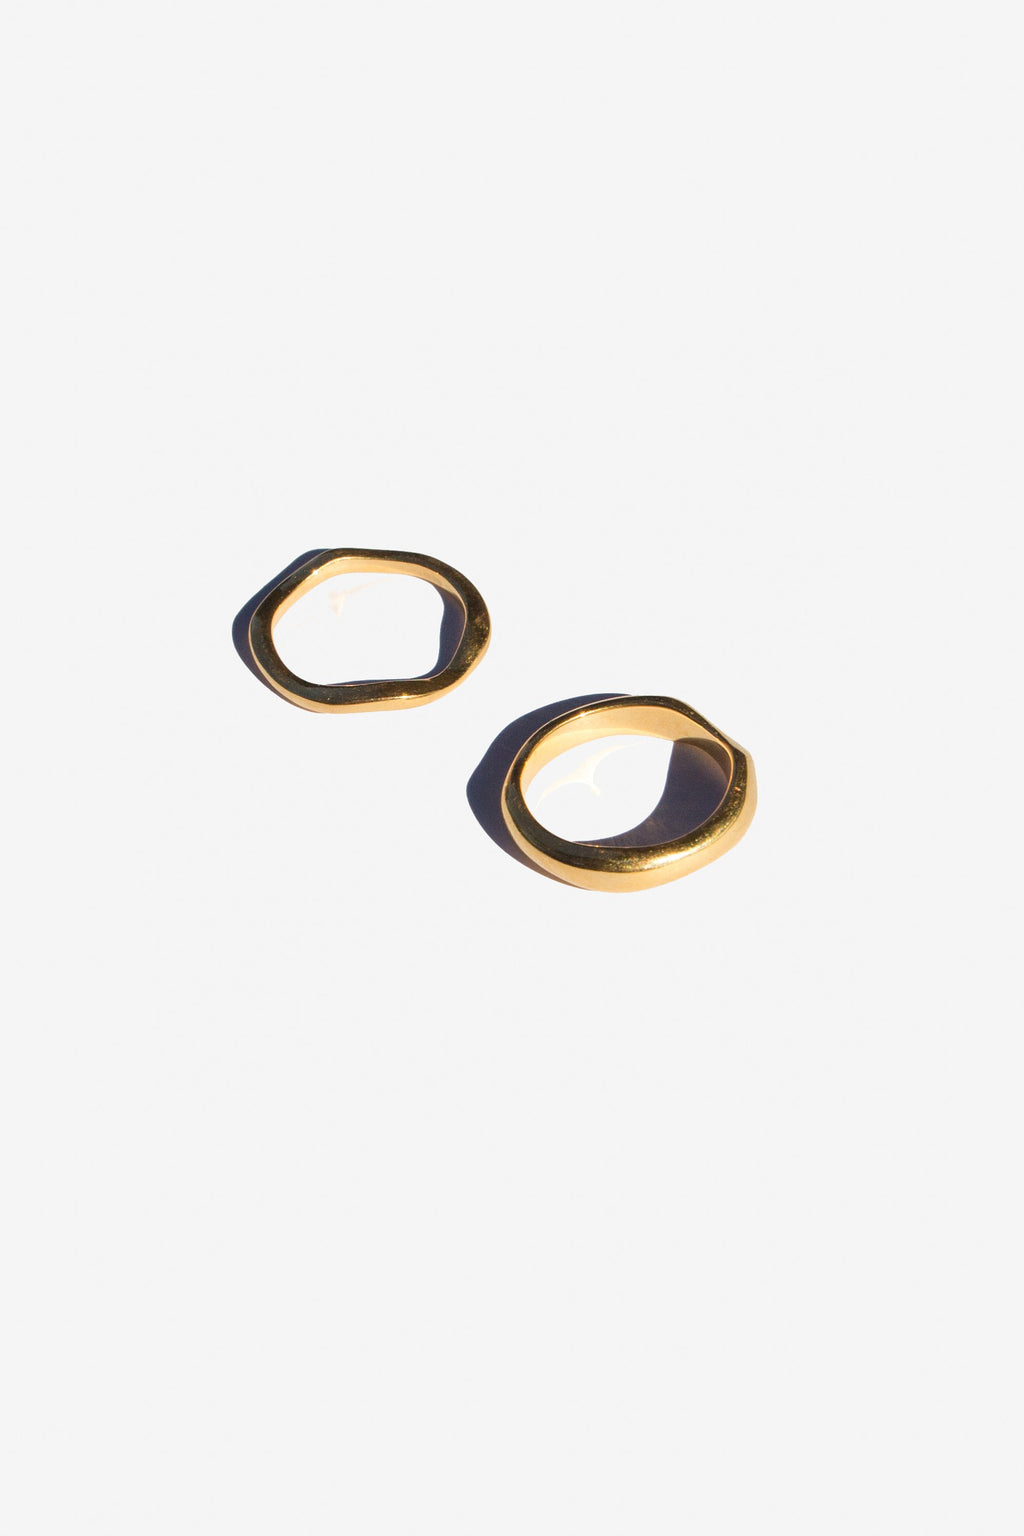 flash - waves ring set - gold